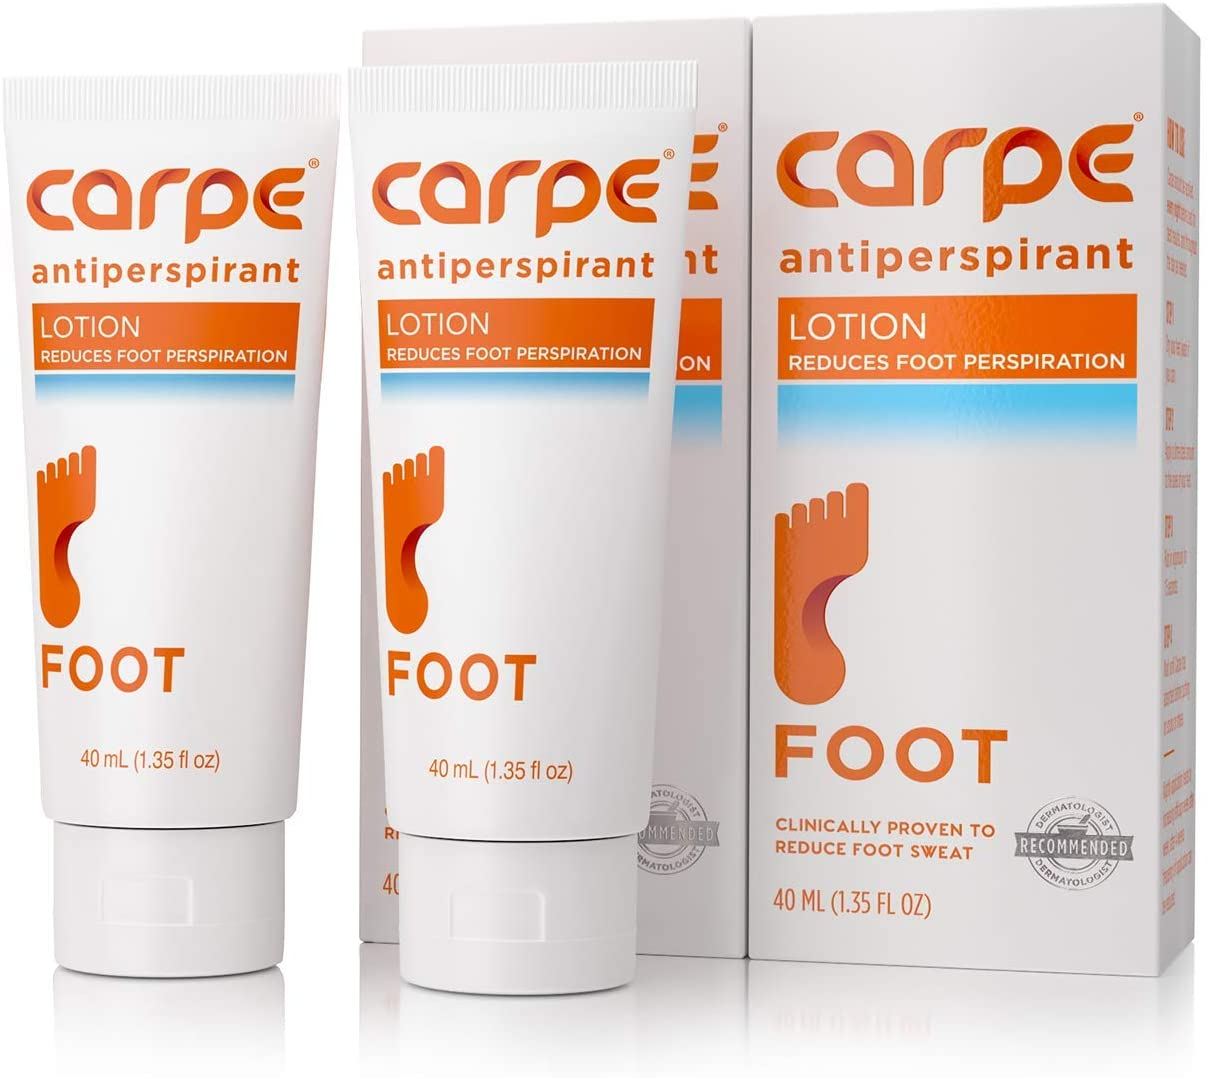 Carpe Antiperspirant Foot Lotion specialty shop So 100% quality warranty Dermatologist-Recommended A